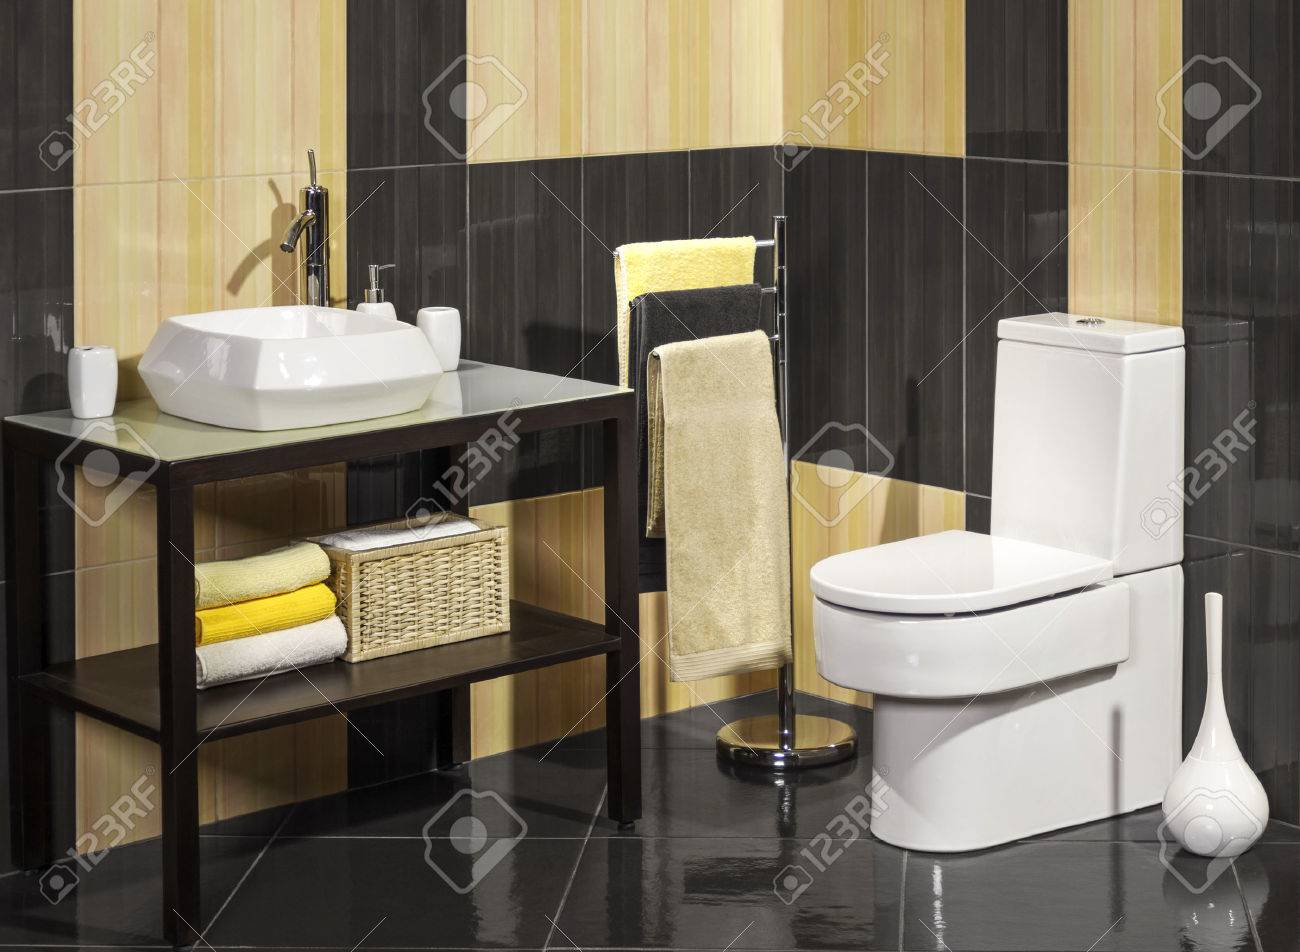 Detail of a modern bathroom with sink and toilet - 41475558